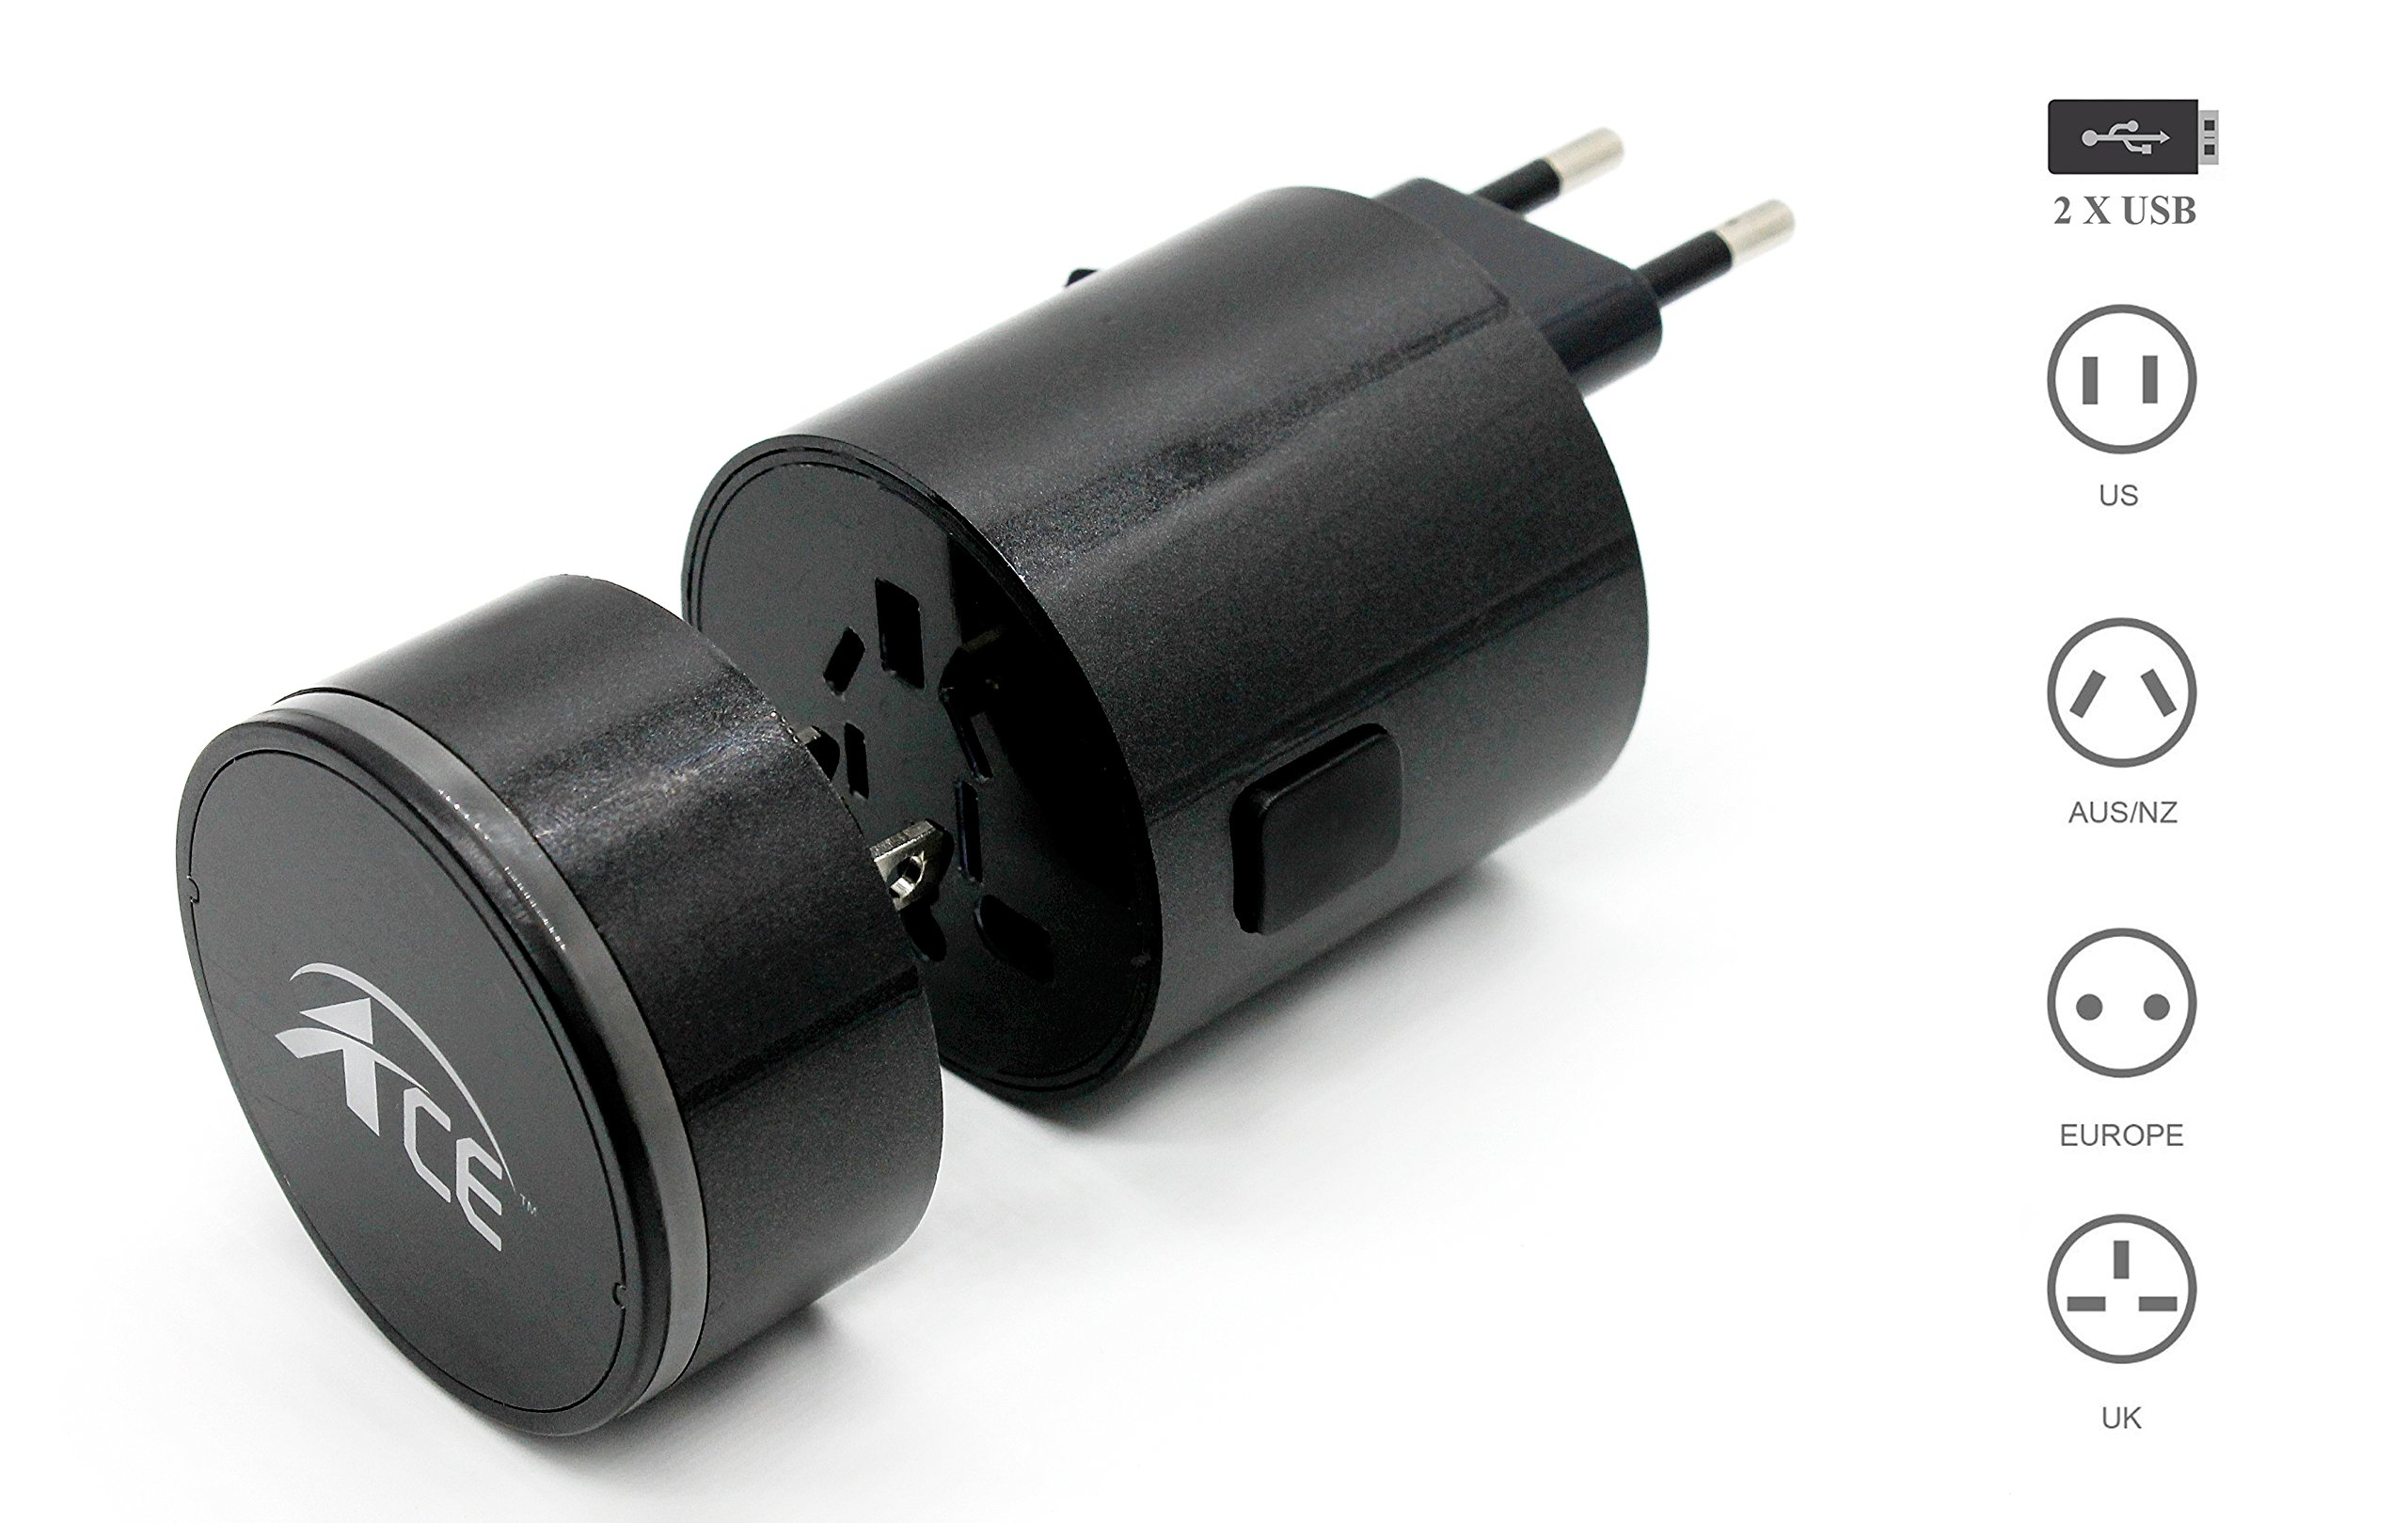 Worldwide Travel Adapter by Ace Adapters   Universal, All-In-One Dual USB Charger   Best International Plug Adapter   Protection Bag   Europe, Asia, Australia Travel   150 Countries   X4 Black